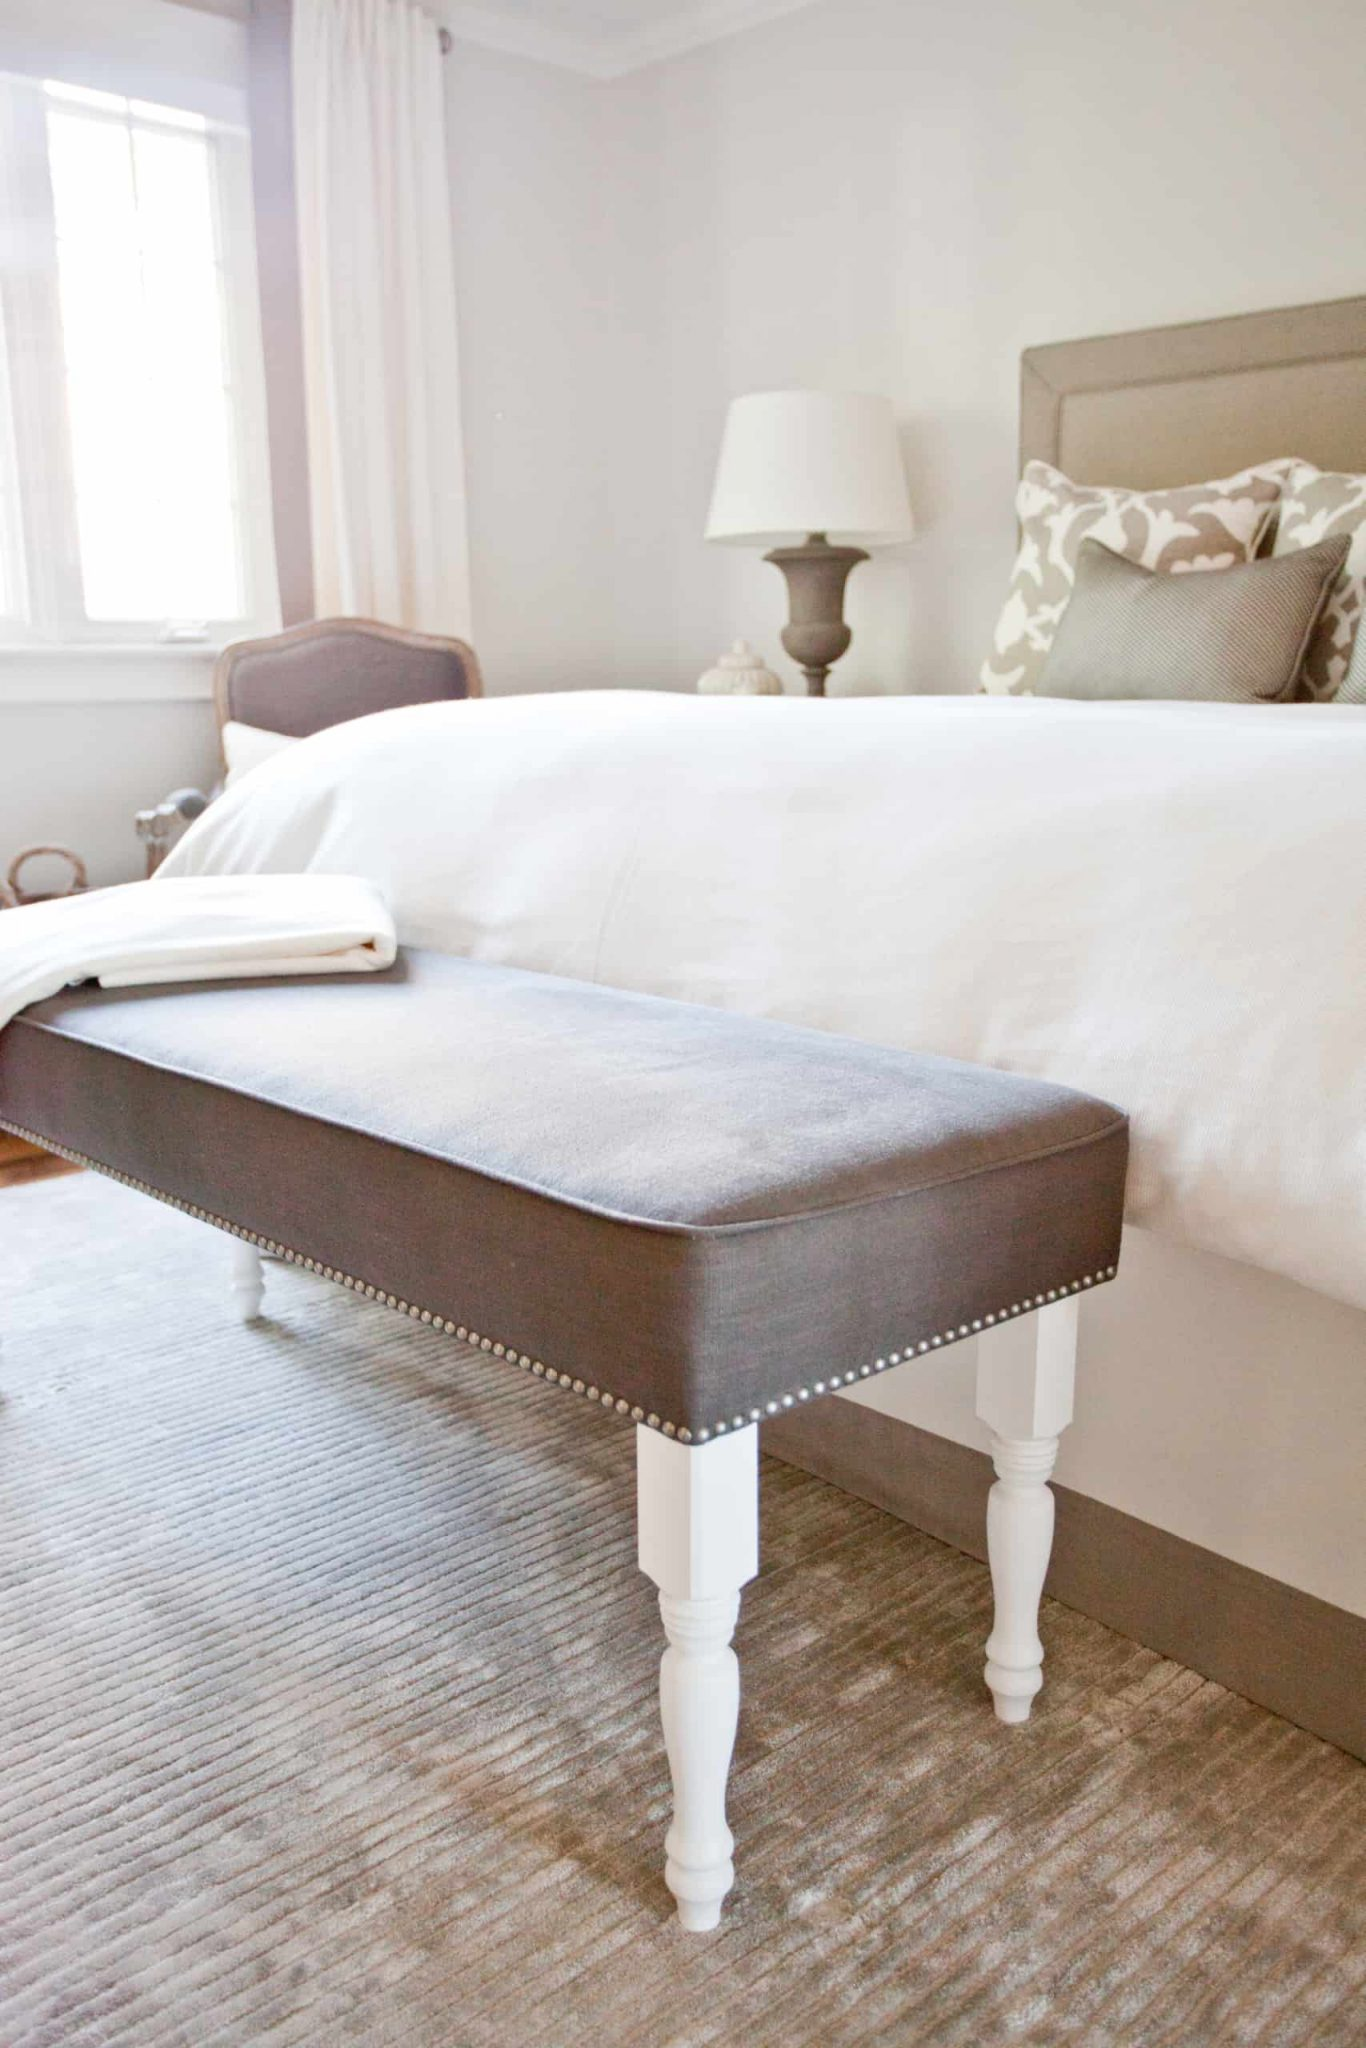 Modern, brown bench against a large bed